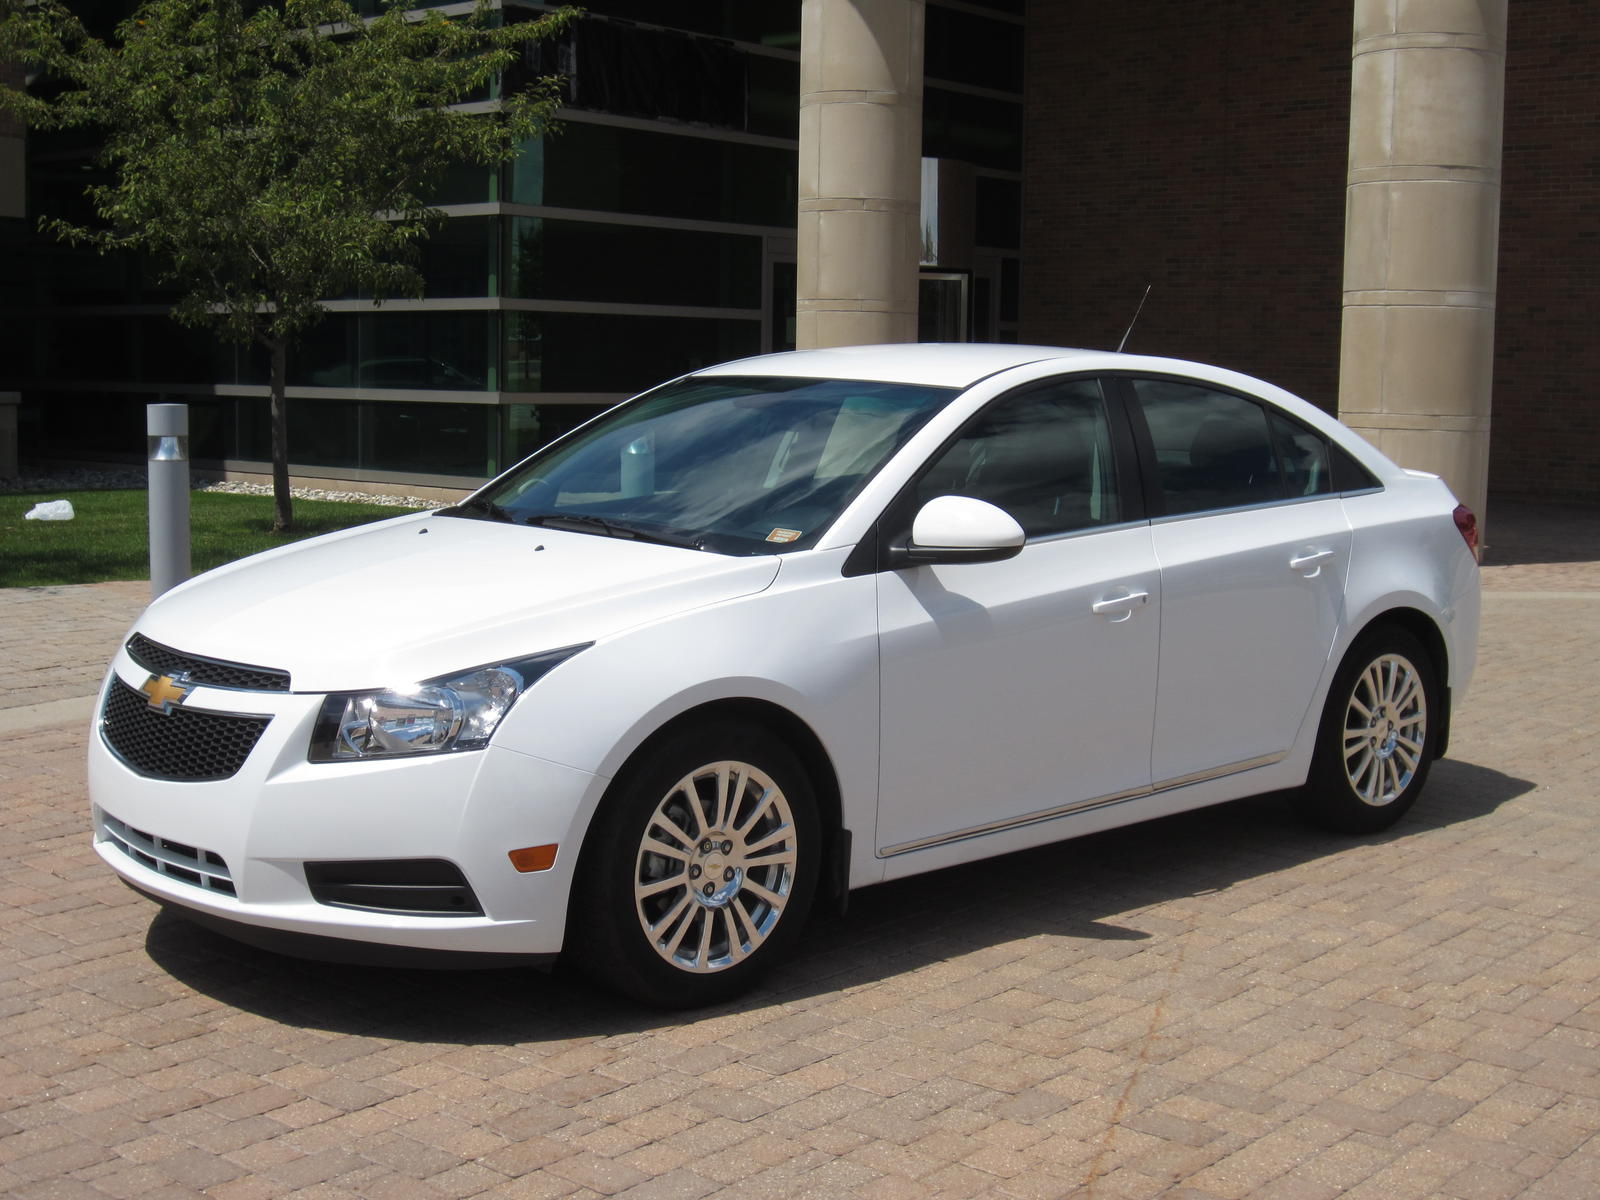 2014 cruze eco manual 6 speed white on black 17 000 miles mint michigan. Black Bedroom Furniture Sets. Home Design Ideas